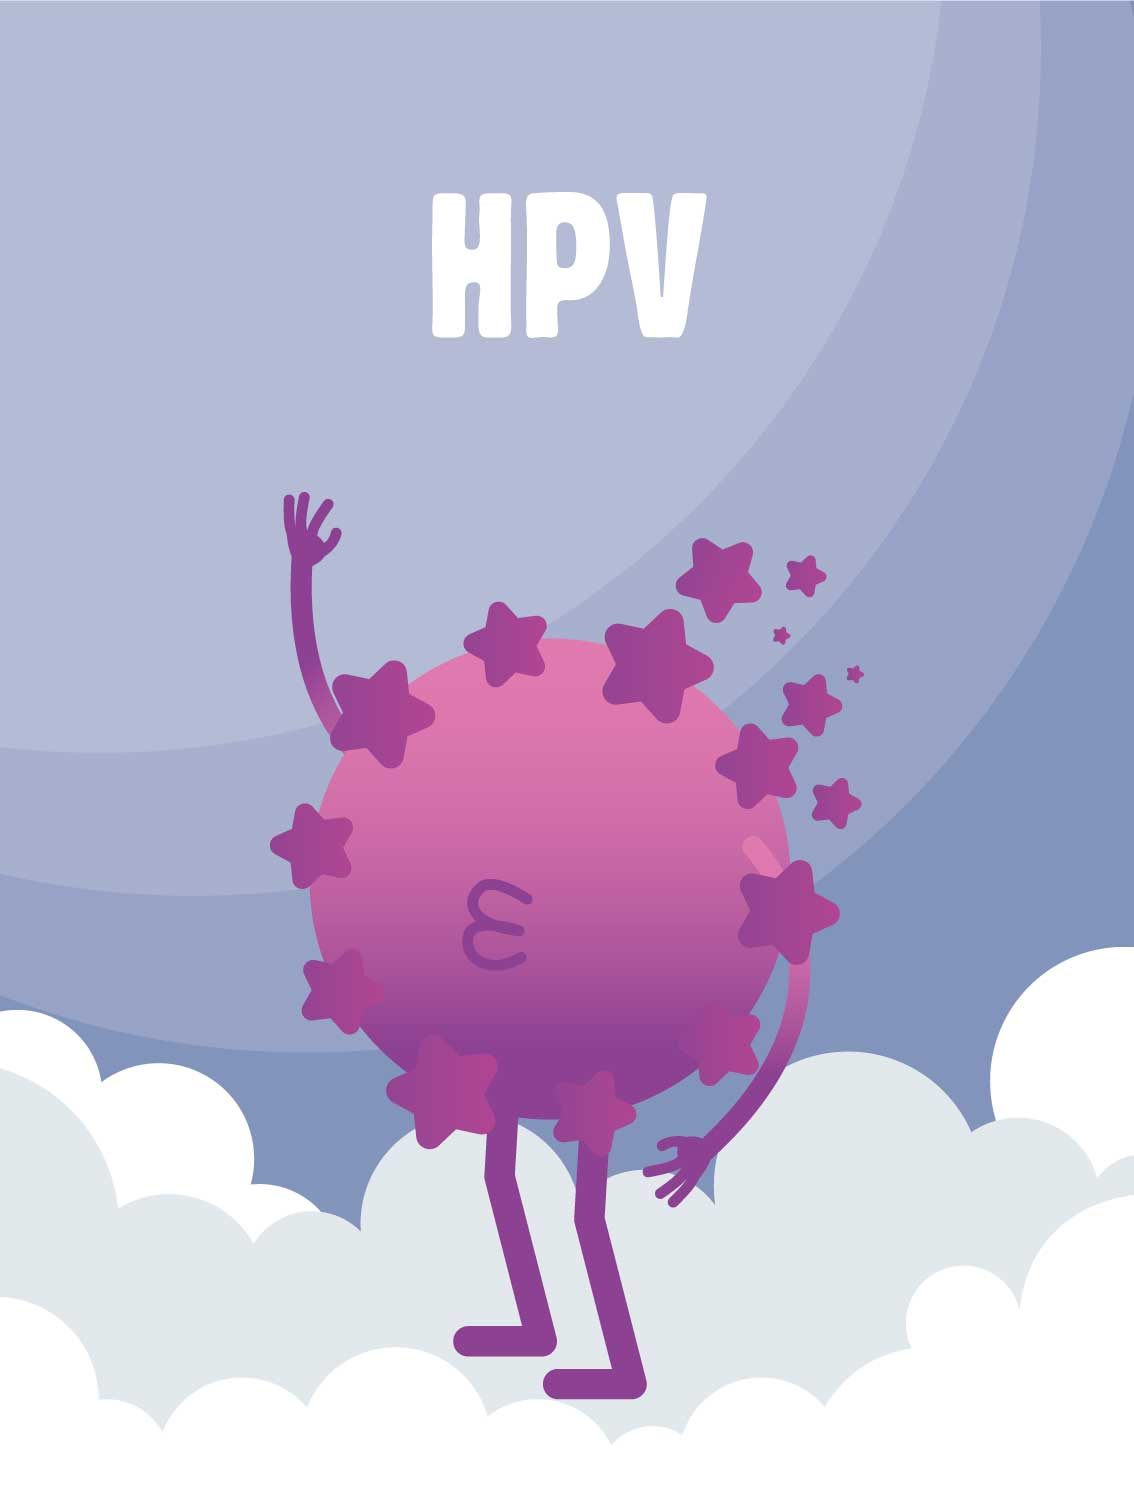 mst hpv homme)